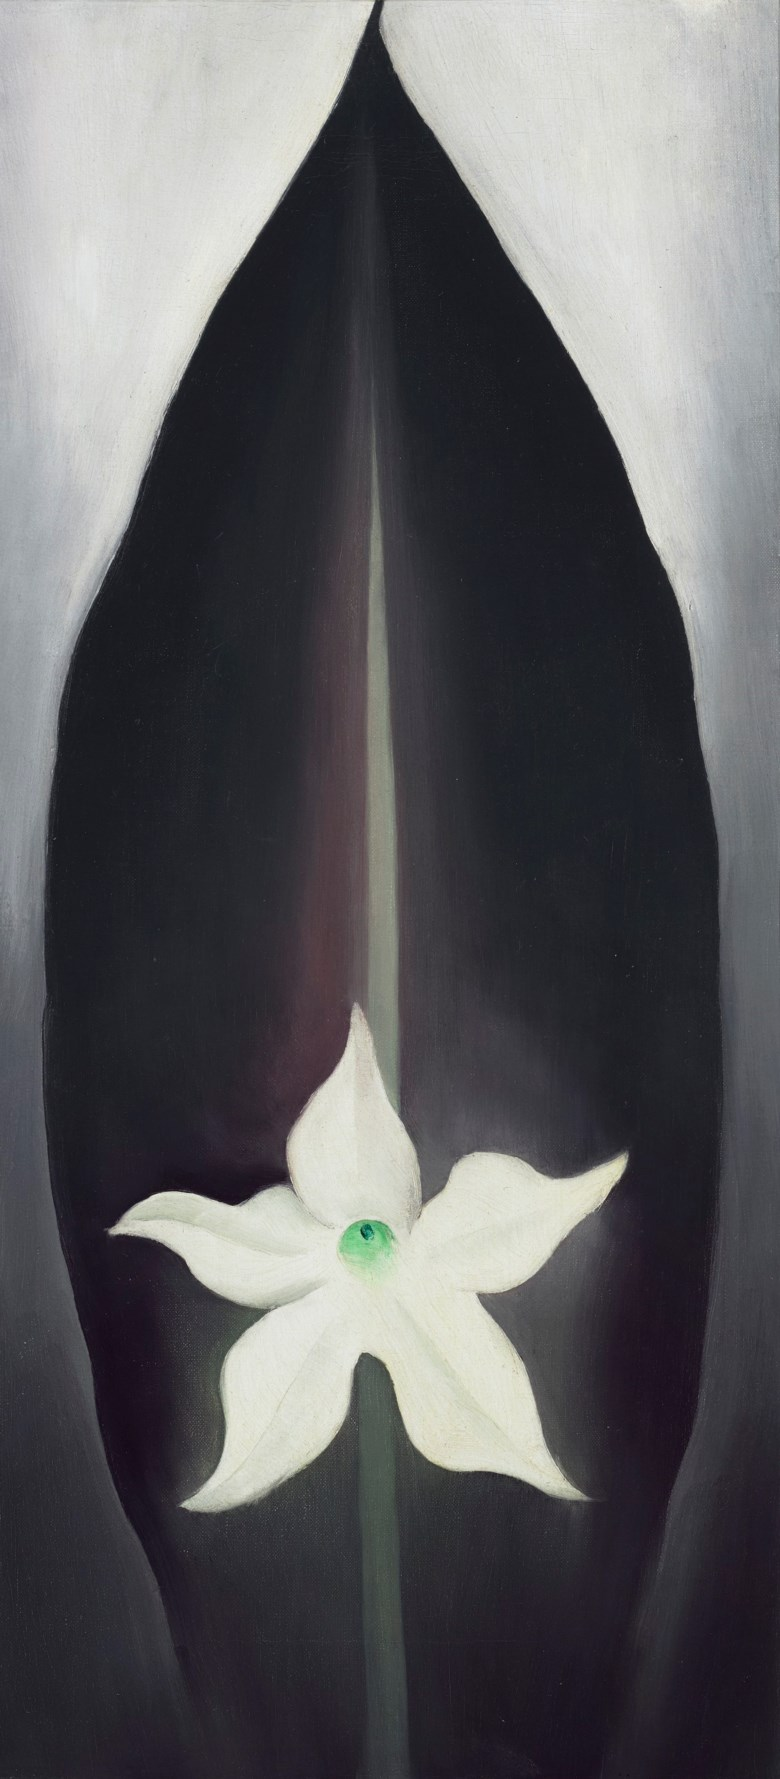 Georgia OKeeffe (1887-1986), Autumn Leaf with White Flower, 1926. Oil on canvas. 20 x 9 in (50.8 x 22.9 cm). Estimate $3,000,000-5,000,000. Offered in Fields of Vision The Private Collection of Artists Wolf Kahn and Emily Mason on 18 May at Christie's in New York